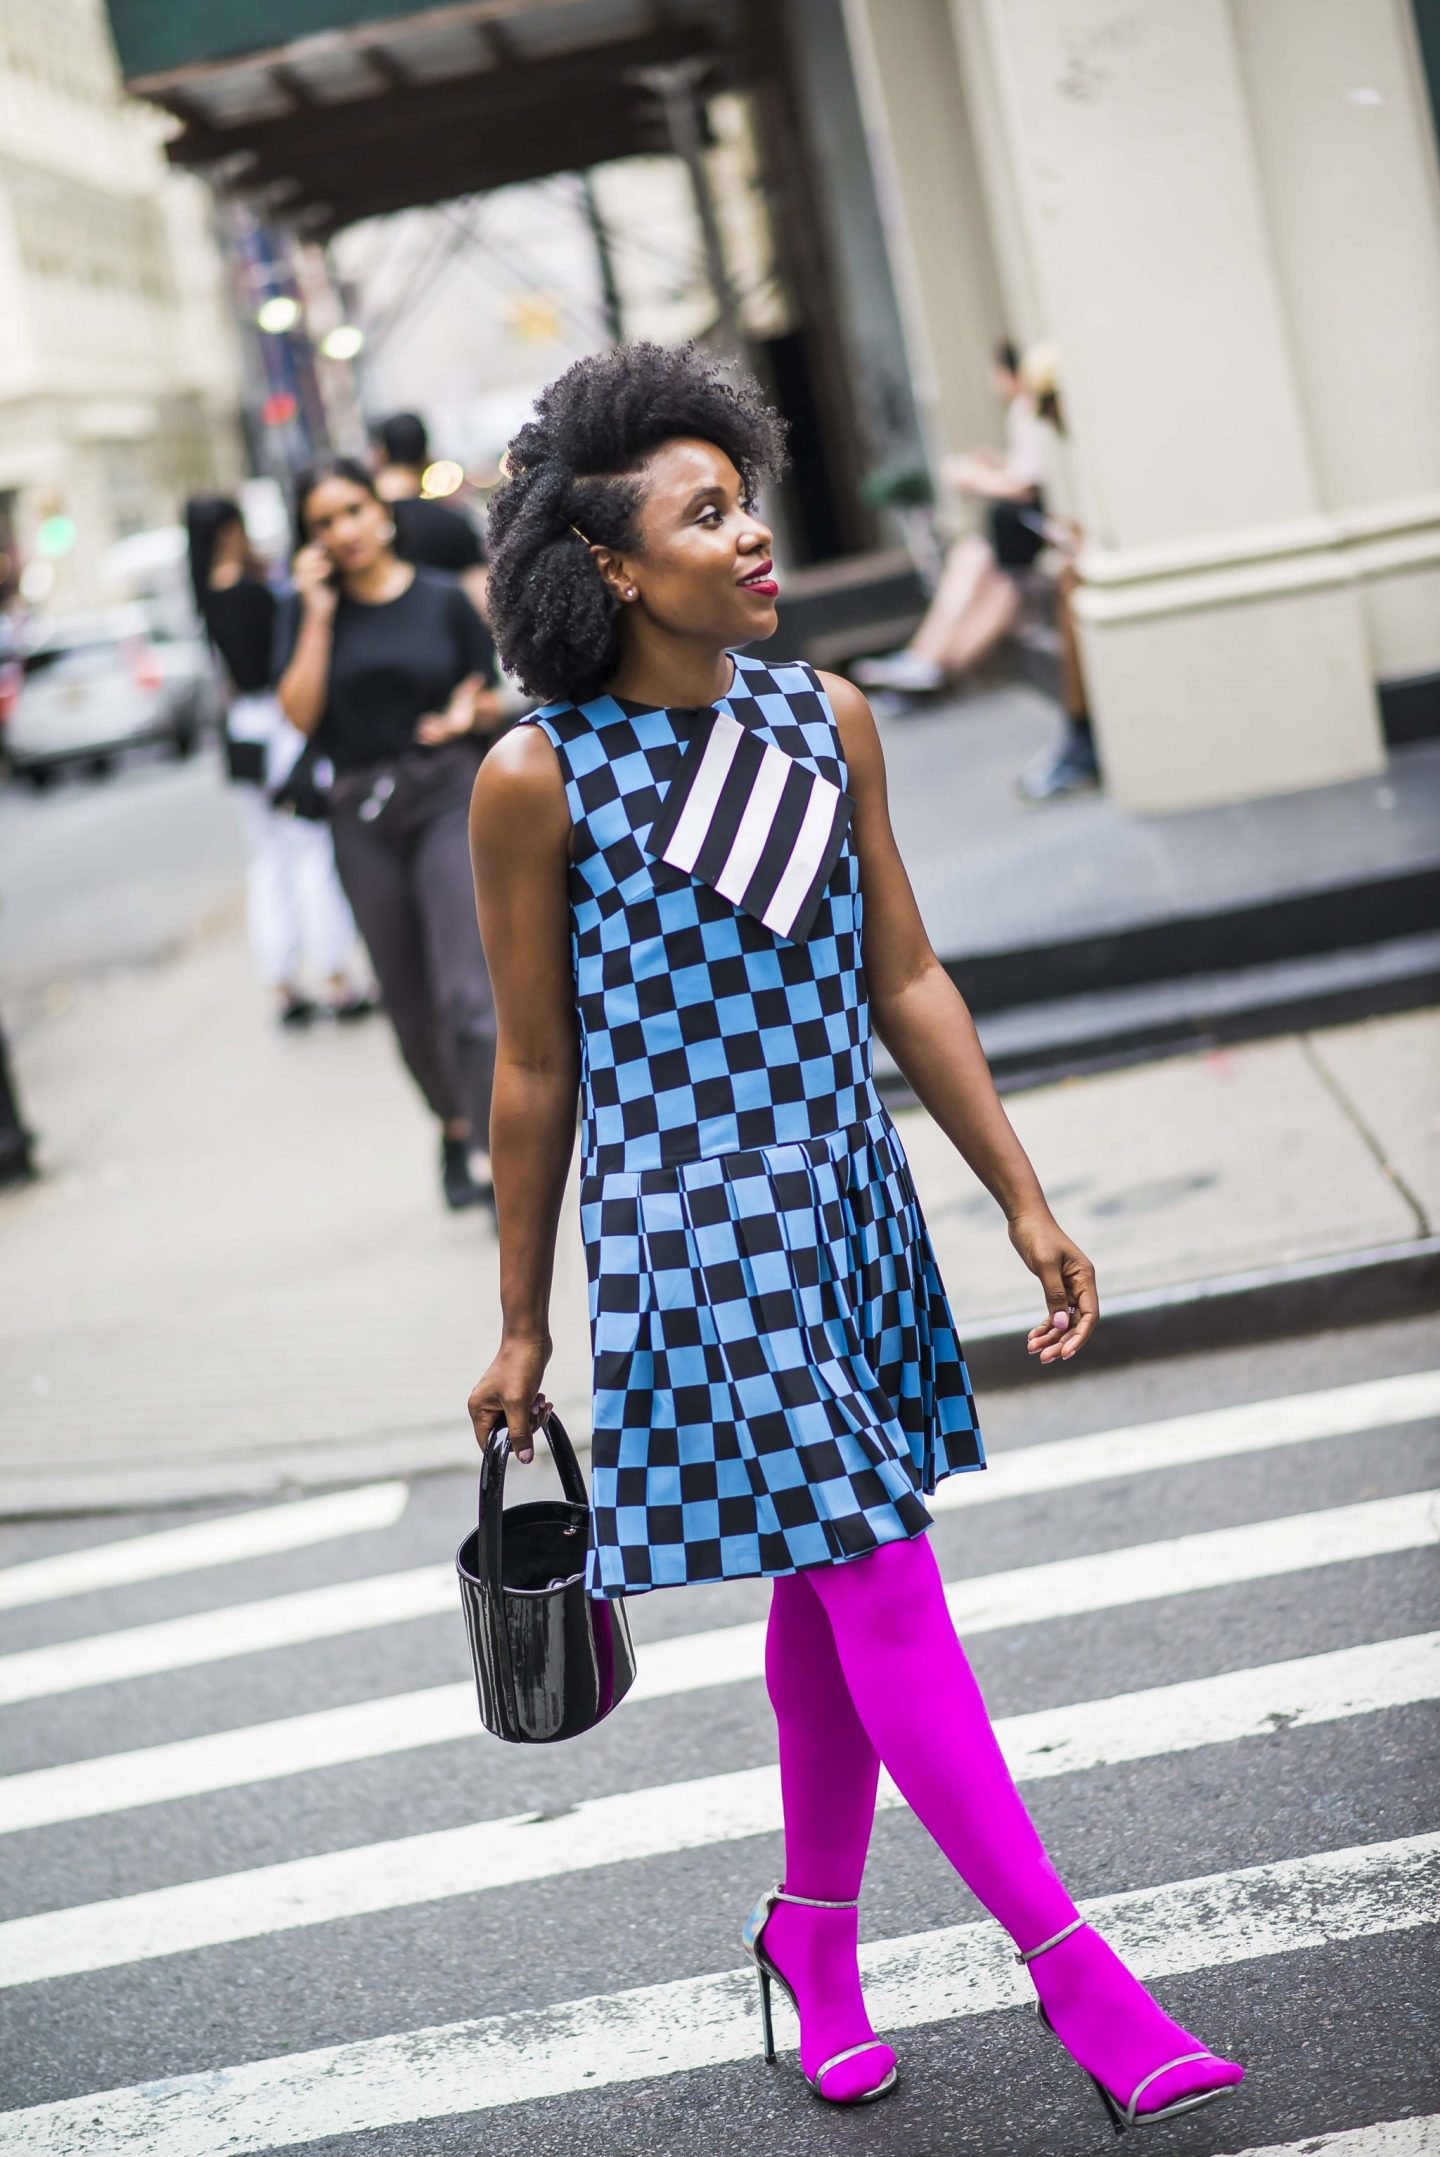 Why I attended New York Fashion Week This Year